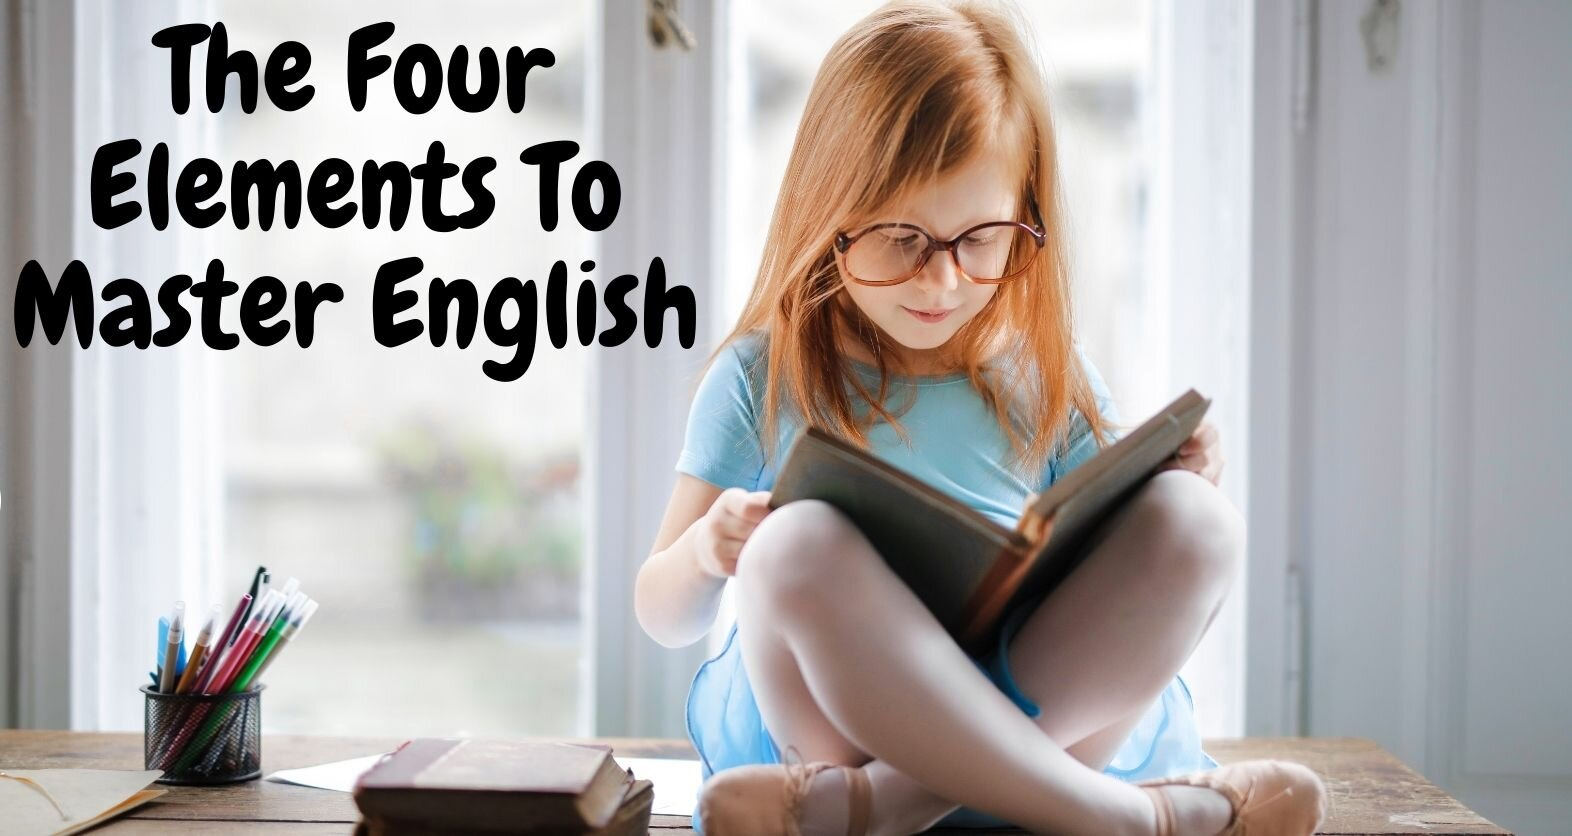 The Four Elements To Master English